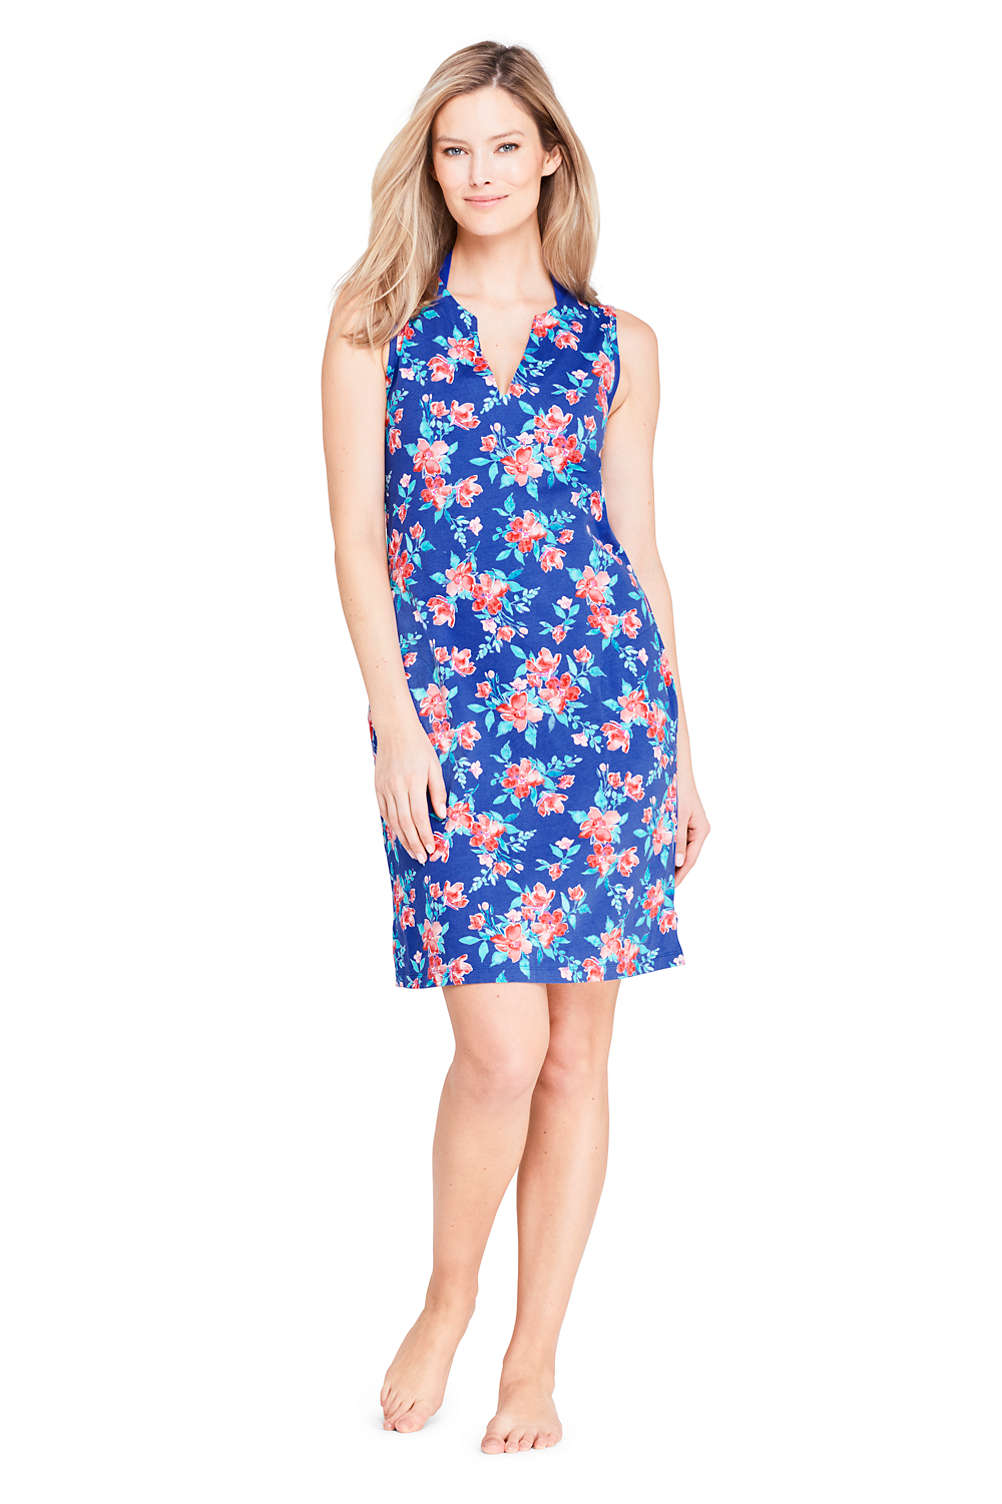 84cf3846d64 Women's Cotton Jersey Sleeveless Tunic Dress Swim Cover-up Print from  Lands' End